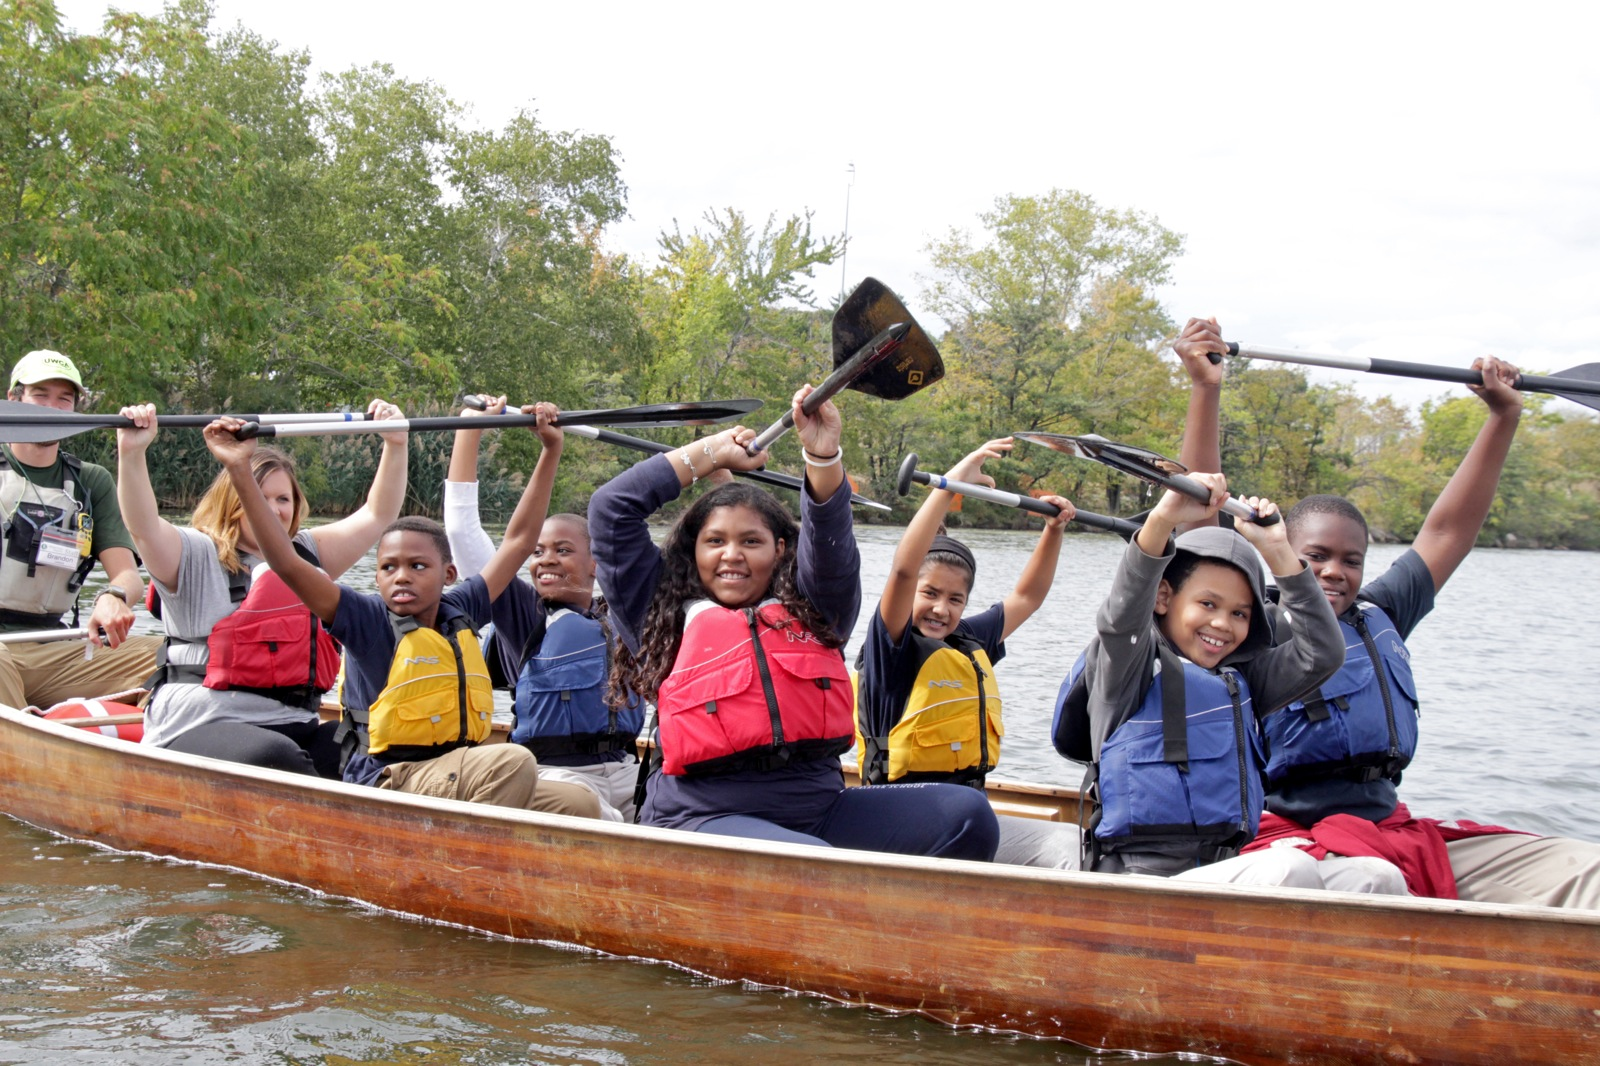 participants in a Voyageur canoe hold their paddles above their heads taking a break from paddling